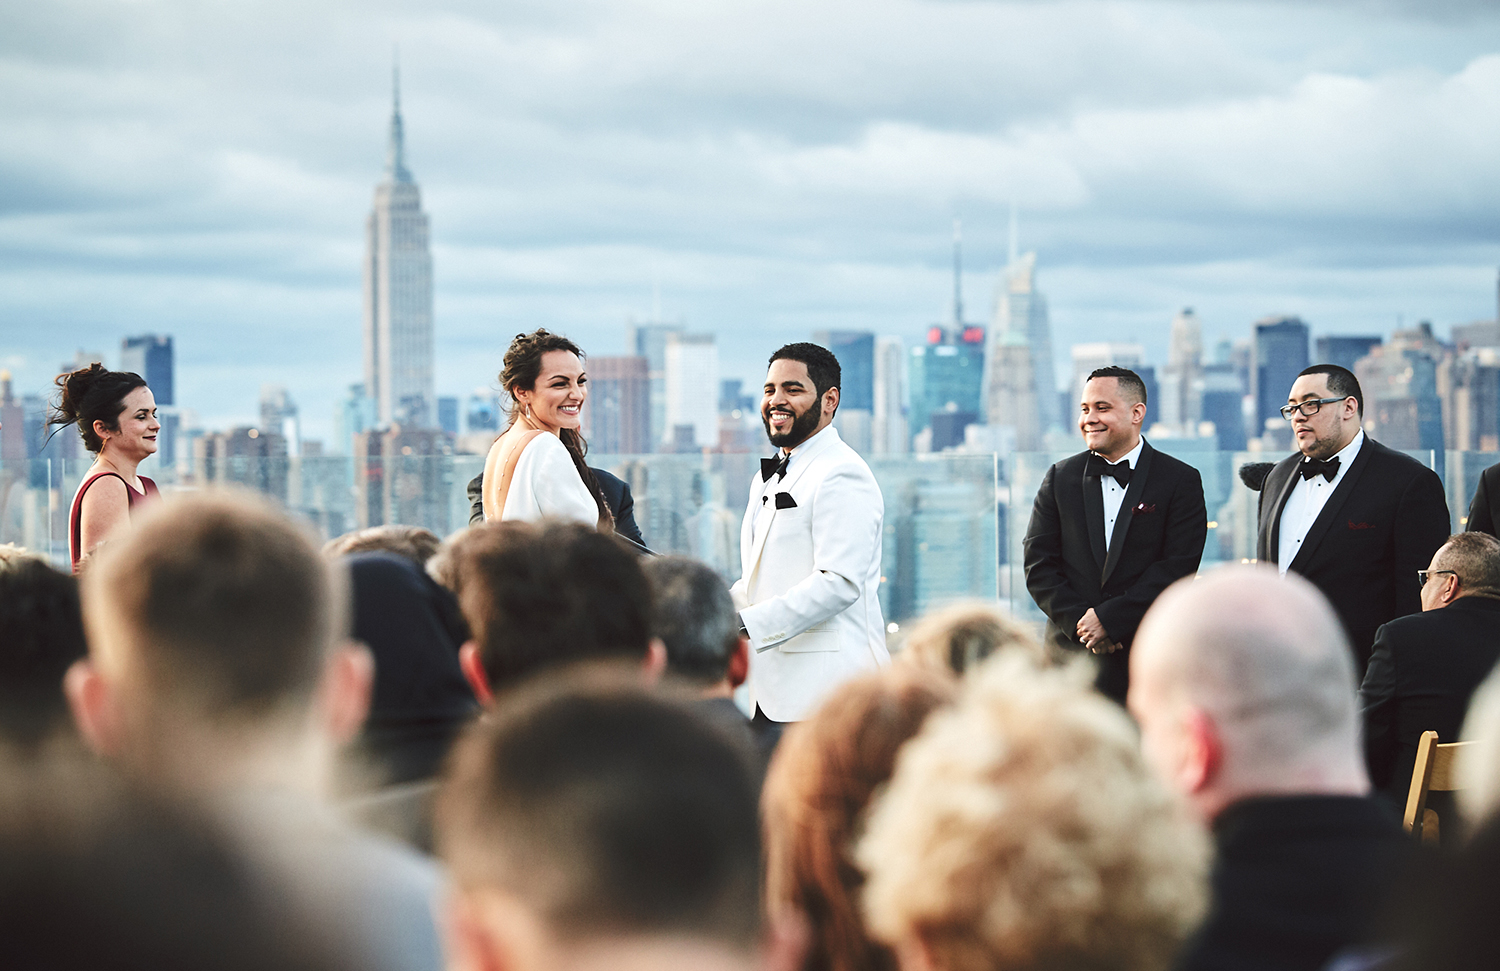 170930_WilliamValeWeddingPhotography_BrooklynWeddingPhotographer_By_BriJohnsonWeddings_0119.jpg